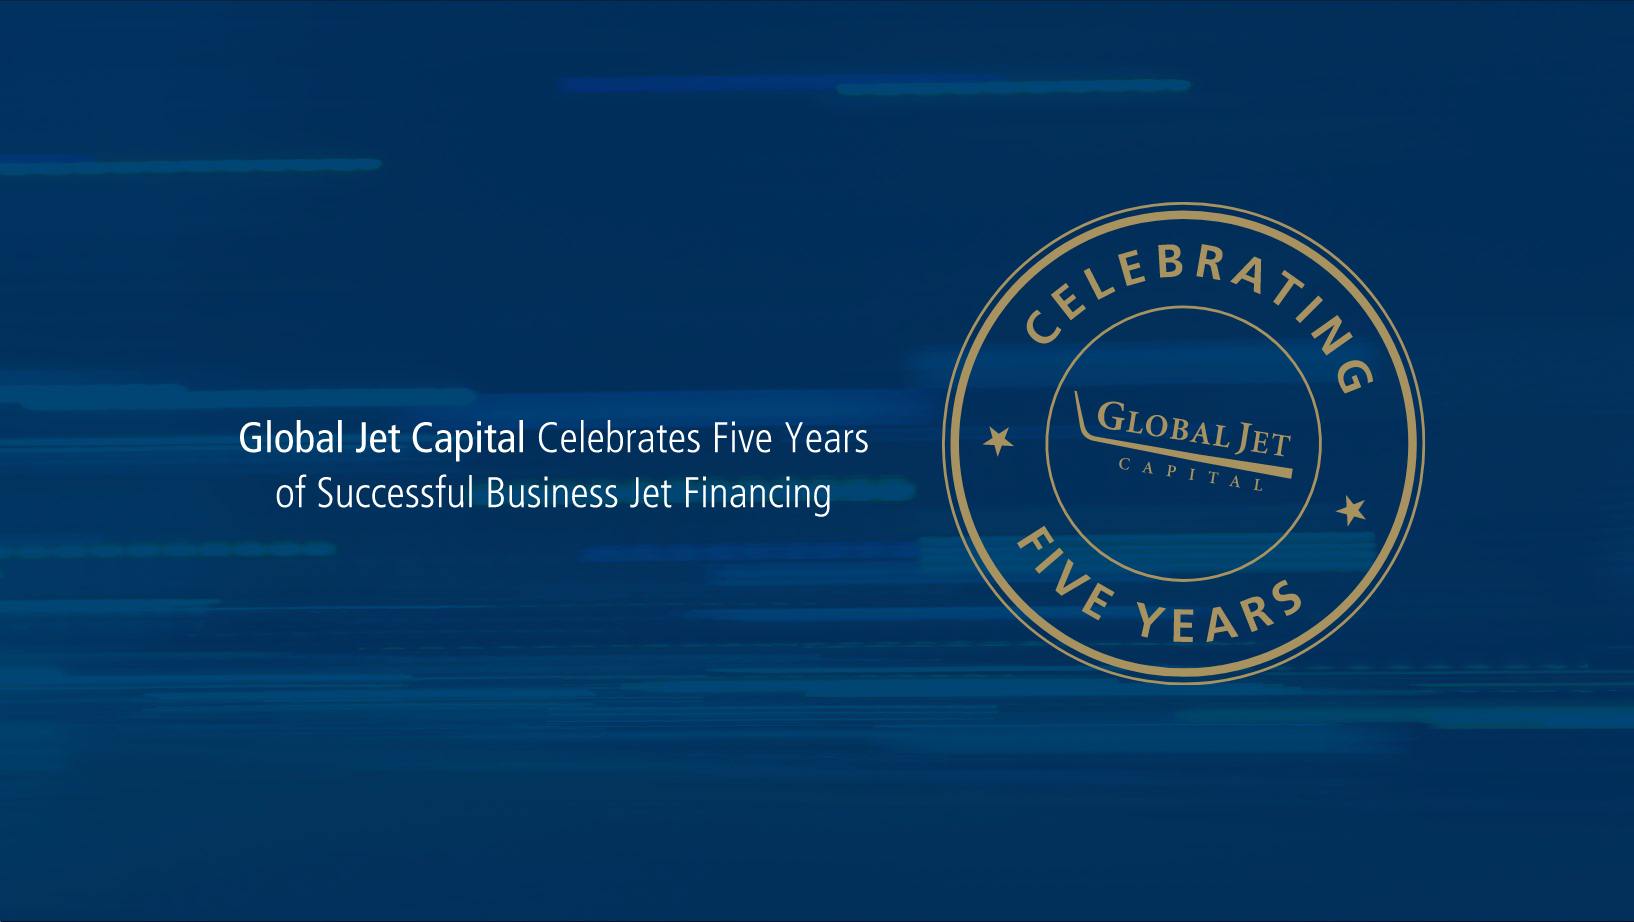 Global Jet Capital Celebrates Five Years of Successful Business Jet Financing